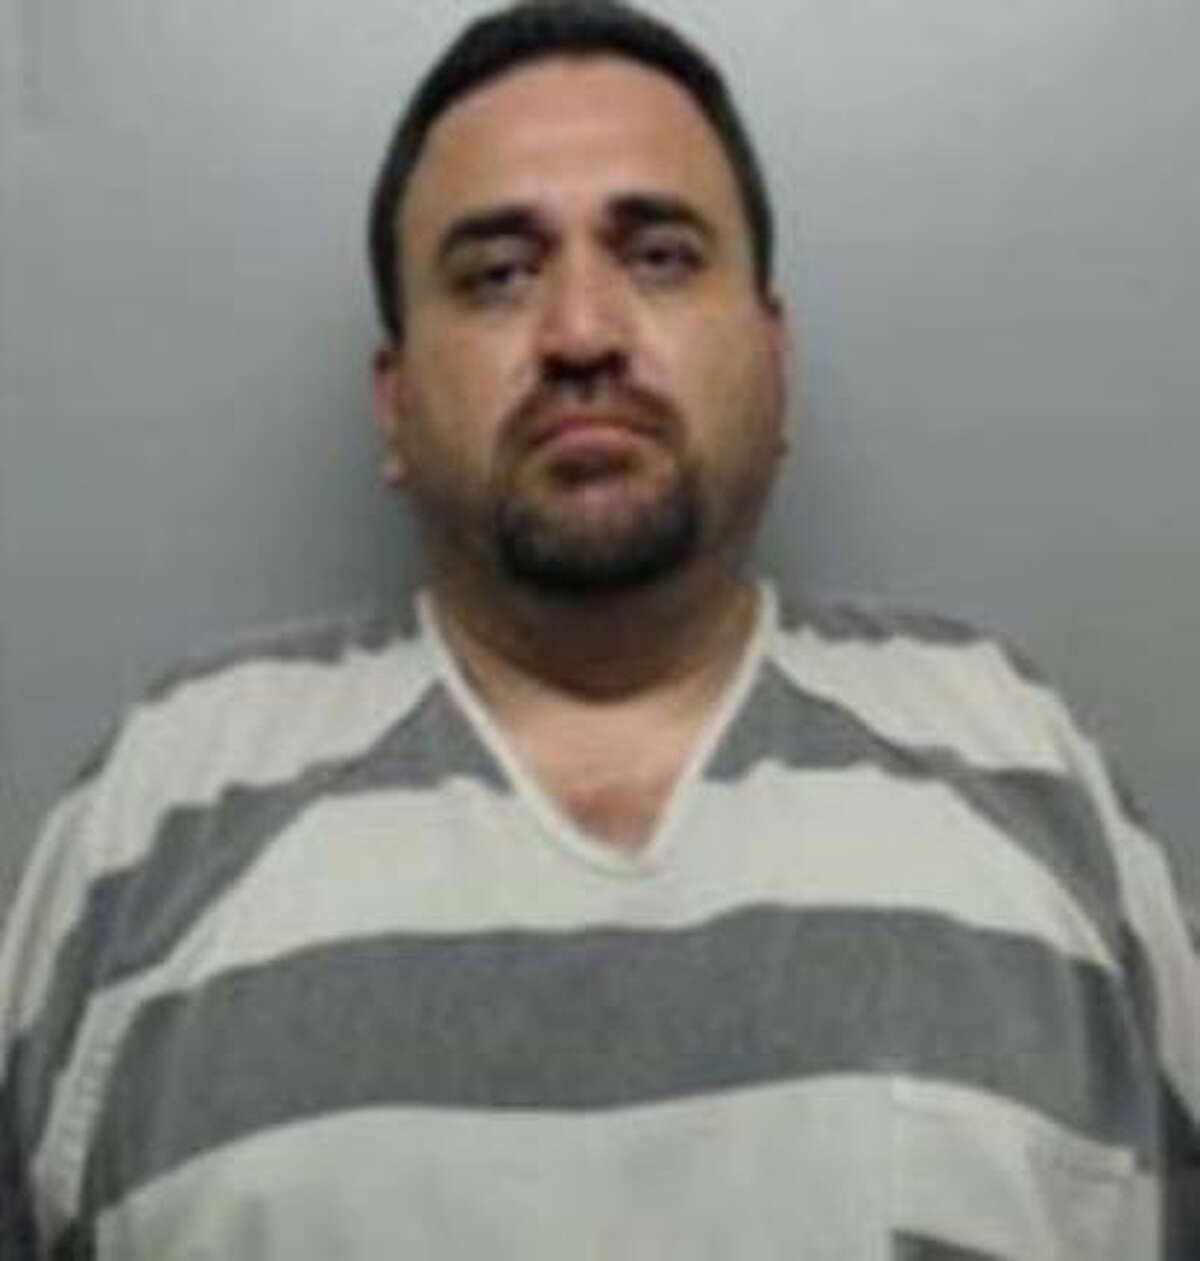 Sgt. Fernando Martel is pictured.Keep clicking through the gallery to see mugshots from Webb County's Operation GOTCHA, as well as photos of police officers in trouble with the law.